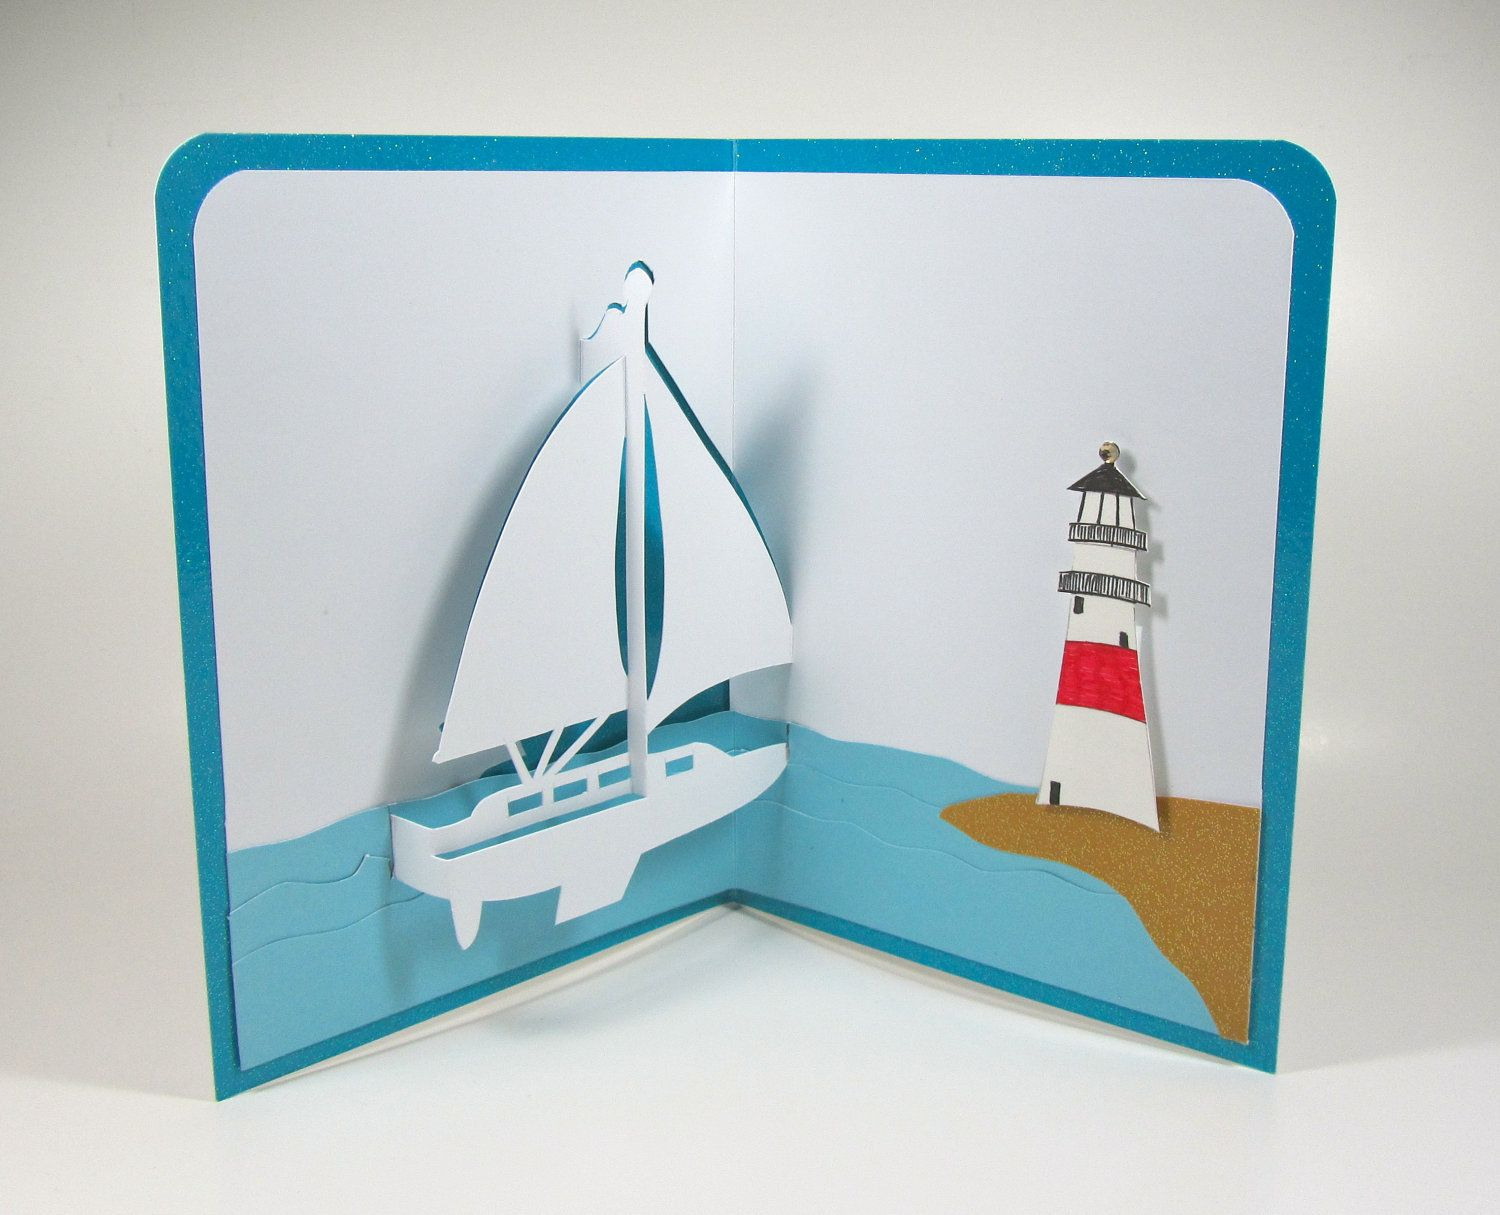 Lighthouse and sailboat card 3d cards pop up pinterest lighthouse and sailboat card greeting kristyandbryce Choice Image